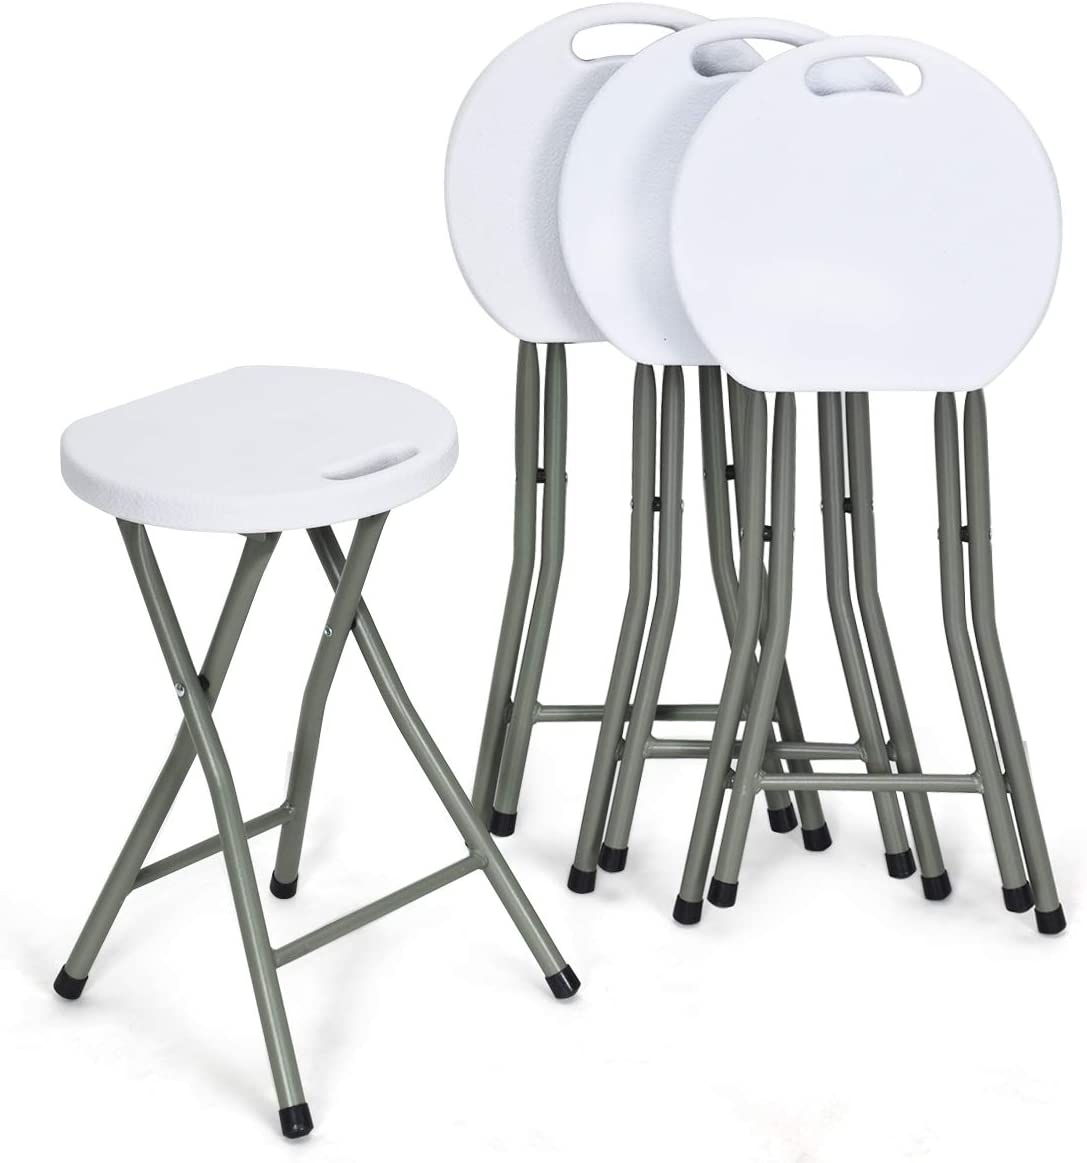 COSTWAY Set of 4 Folding Stool, Heavy Duty 18 inch Foldable Round Chair, Portable Collapsible Padded Seats with Durable Iron Legs, 300lbs Capacity for Adults, Suitable for Indoor and Outdoor (White)